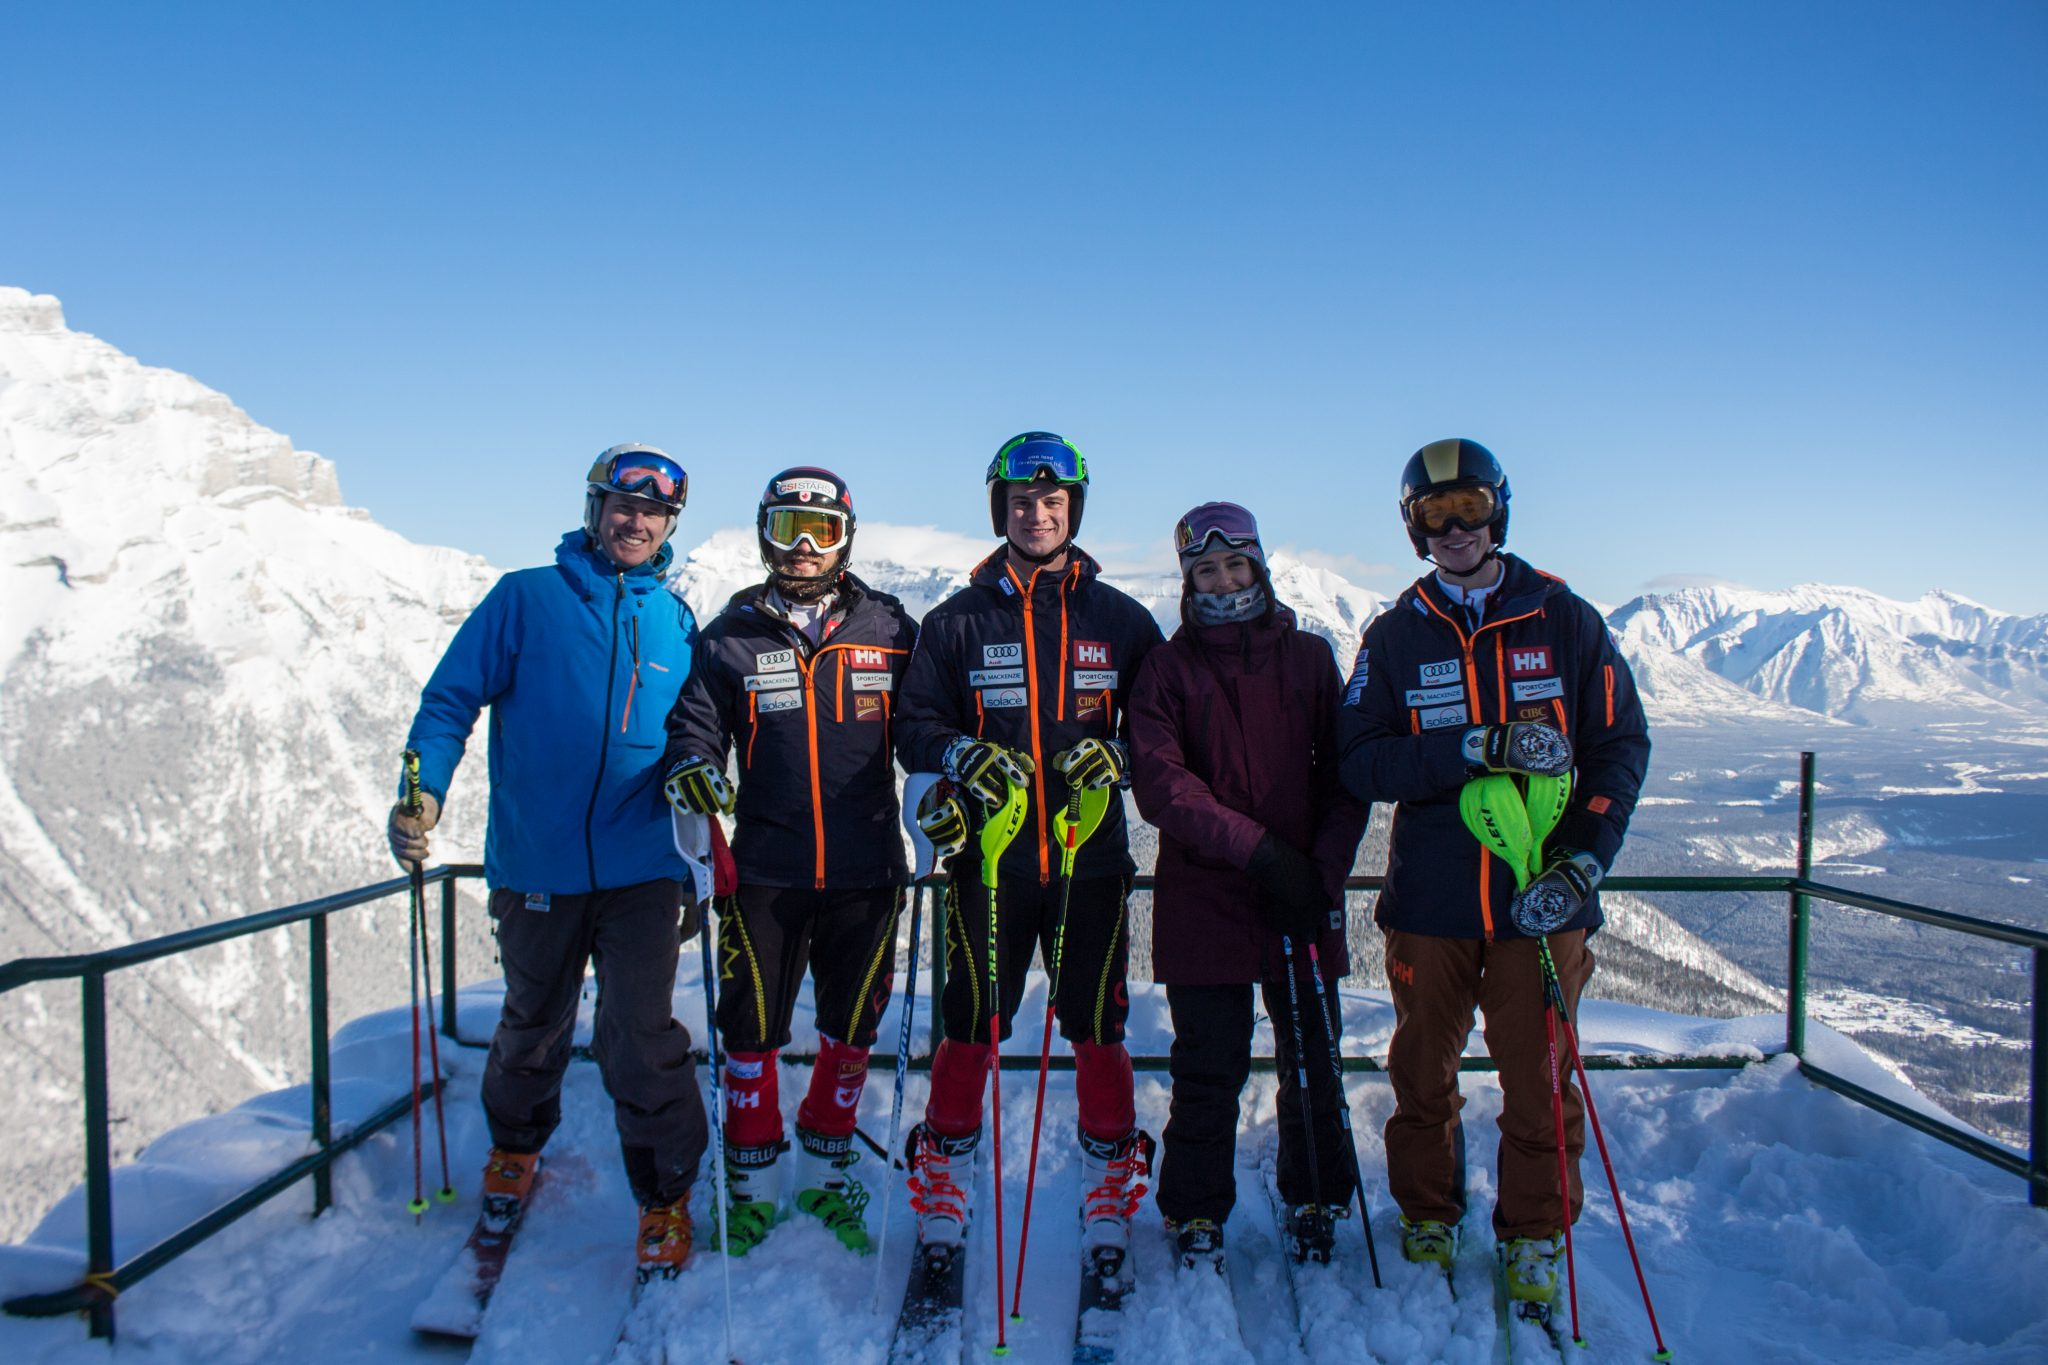 image-5_bar-alumni-phil-brown-erik-read-trevor-philp-on-a-powder-day-at-norquay-in-feb-2018.-pictured-with-norquays-simon-moffatt-and-freeskiing-star_former-bar-tatum-monod